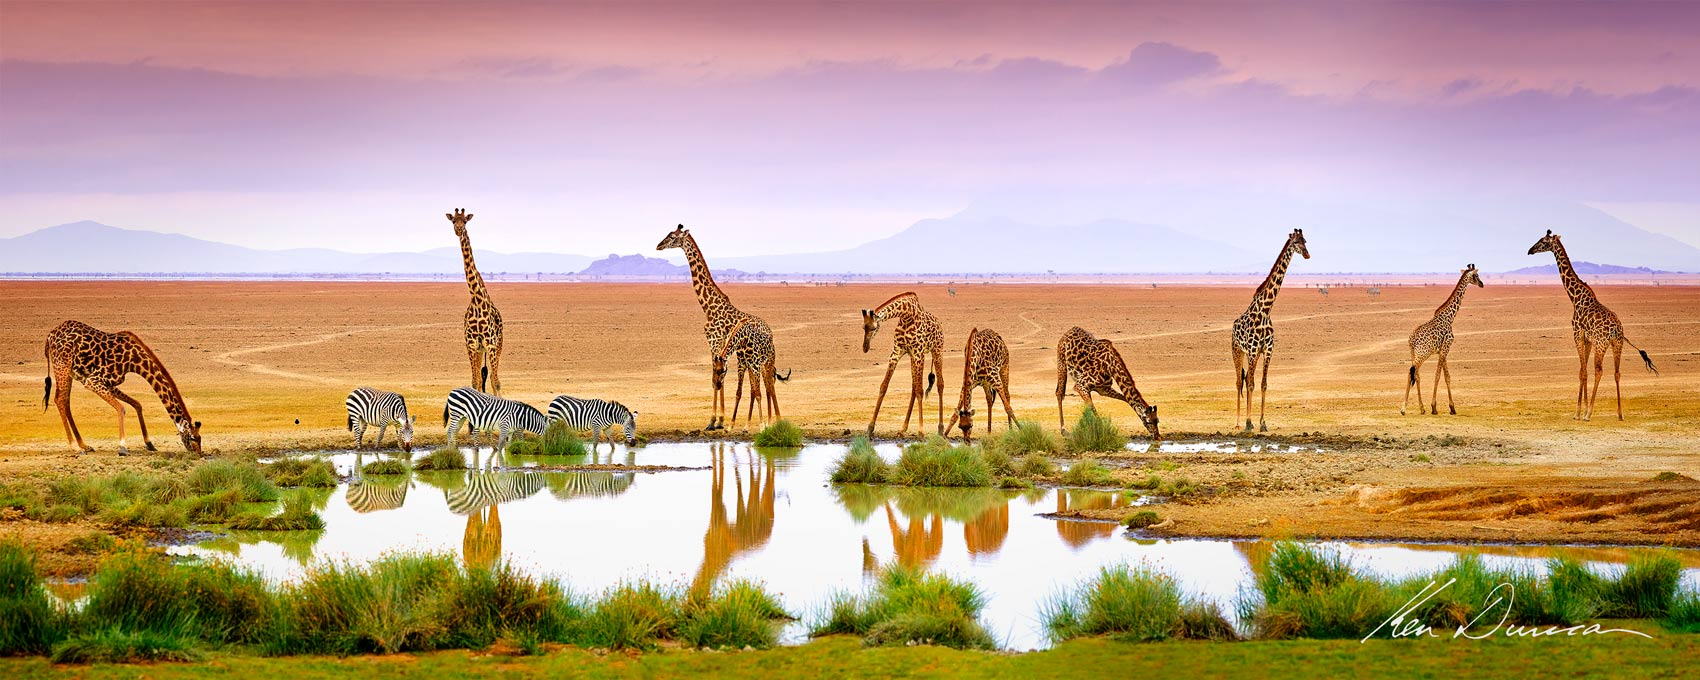 A small group of Giraffe and Zebra drink at a rare beautiful waterhole in Kenya